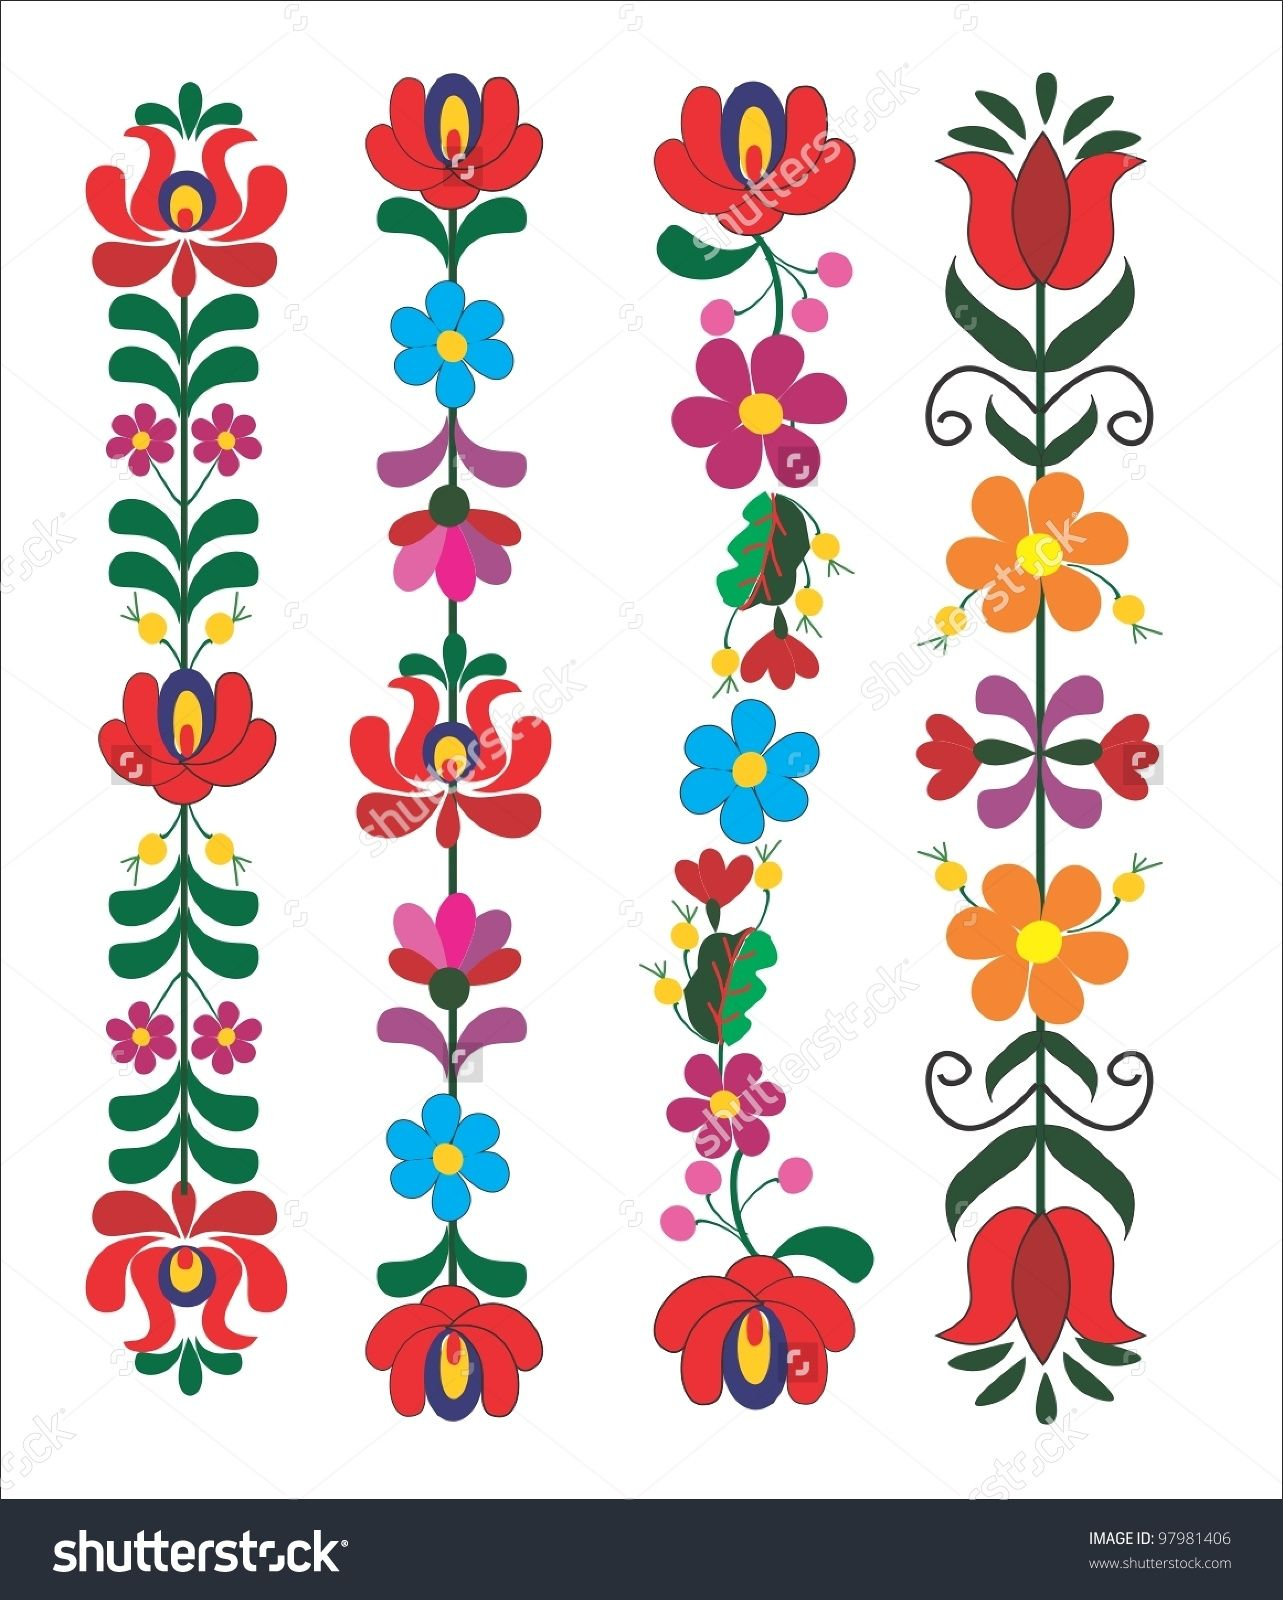 embroidery hungarian pattern | camisas | Pinterest | Embroidery ...